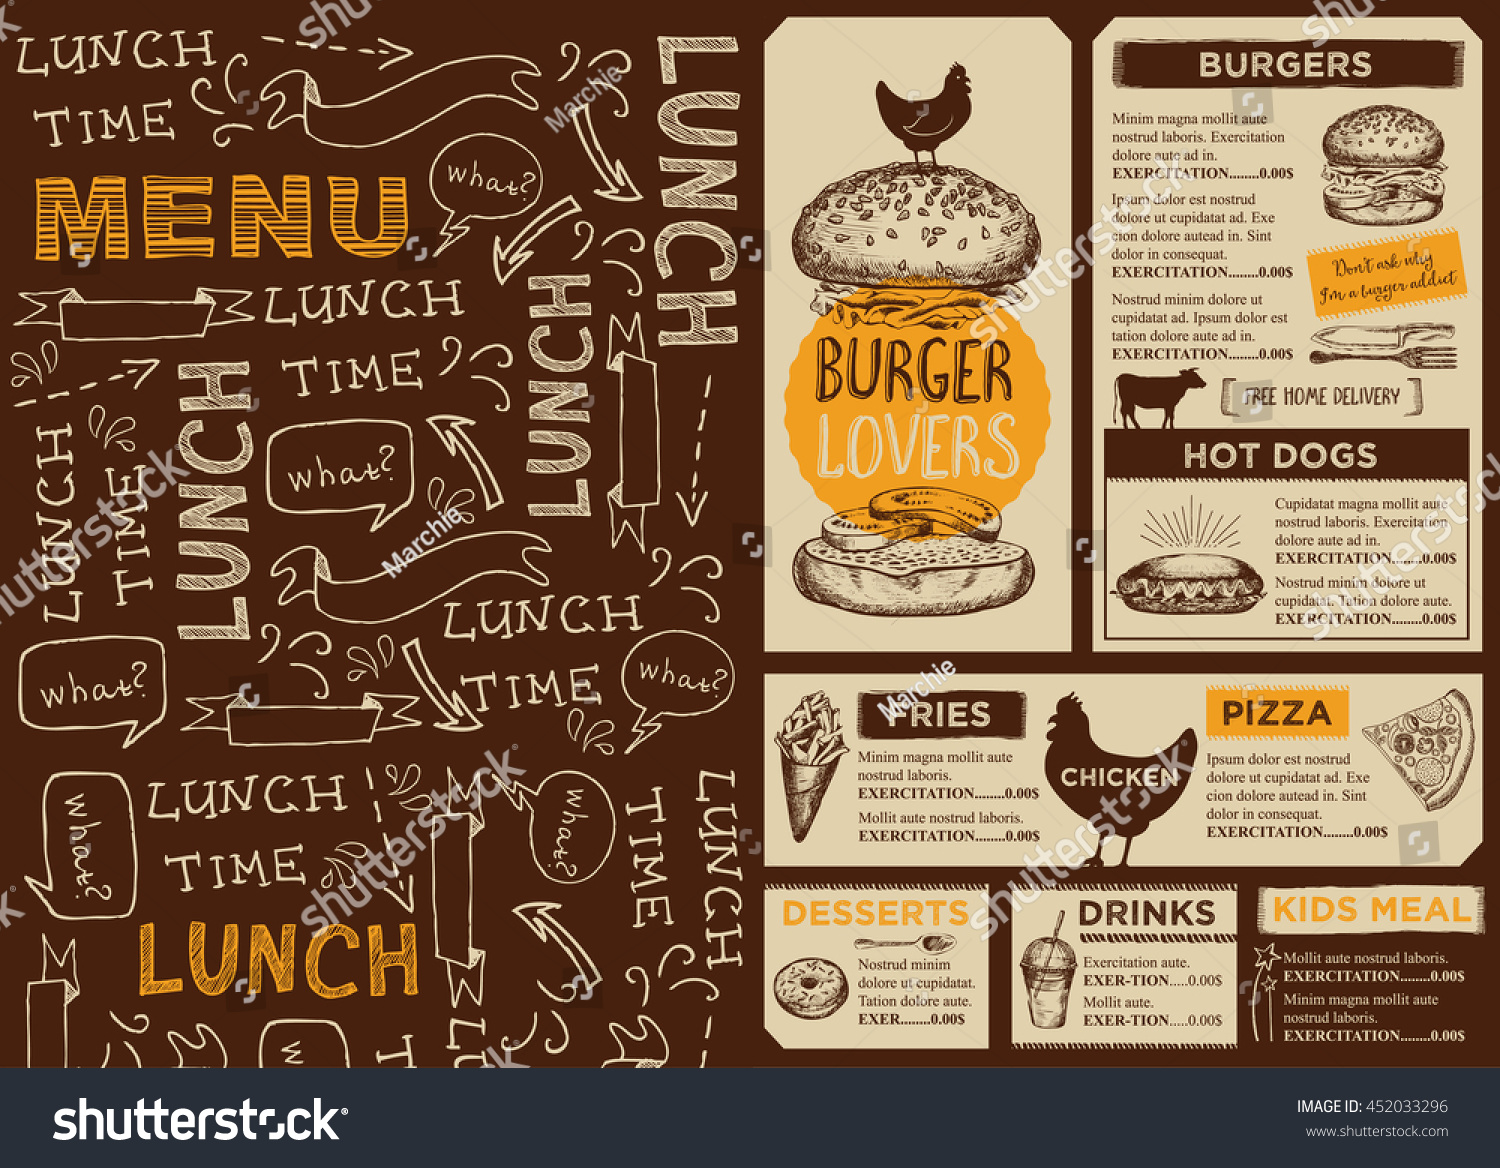 Diner placemats